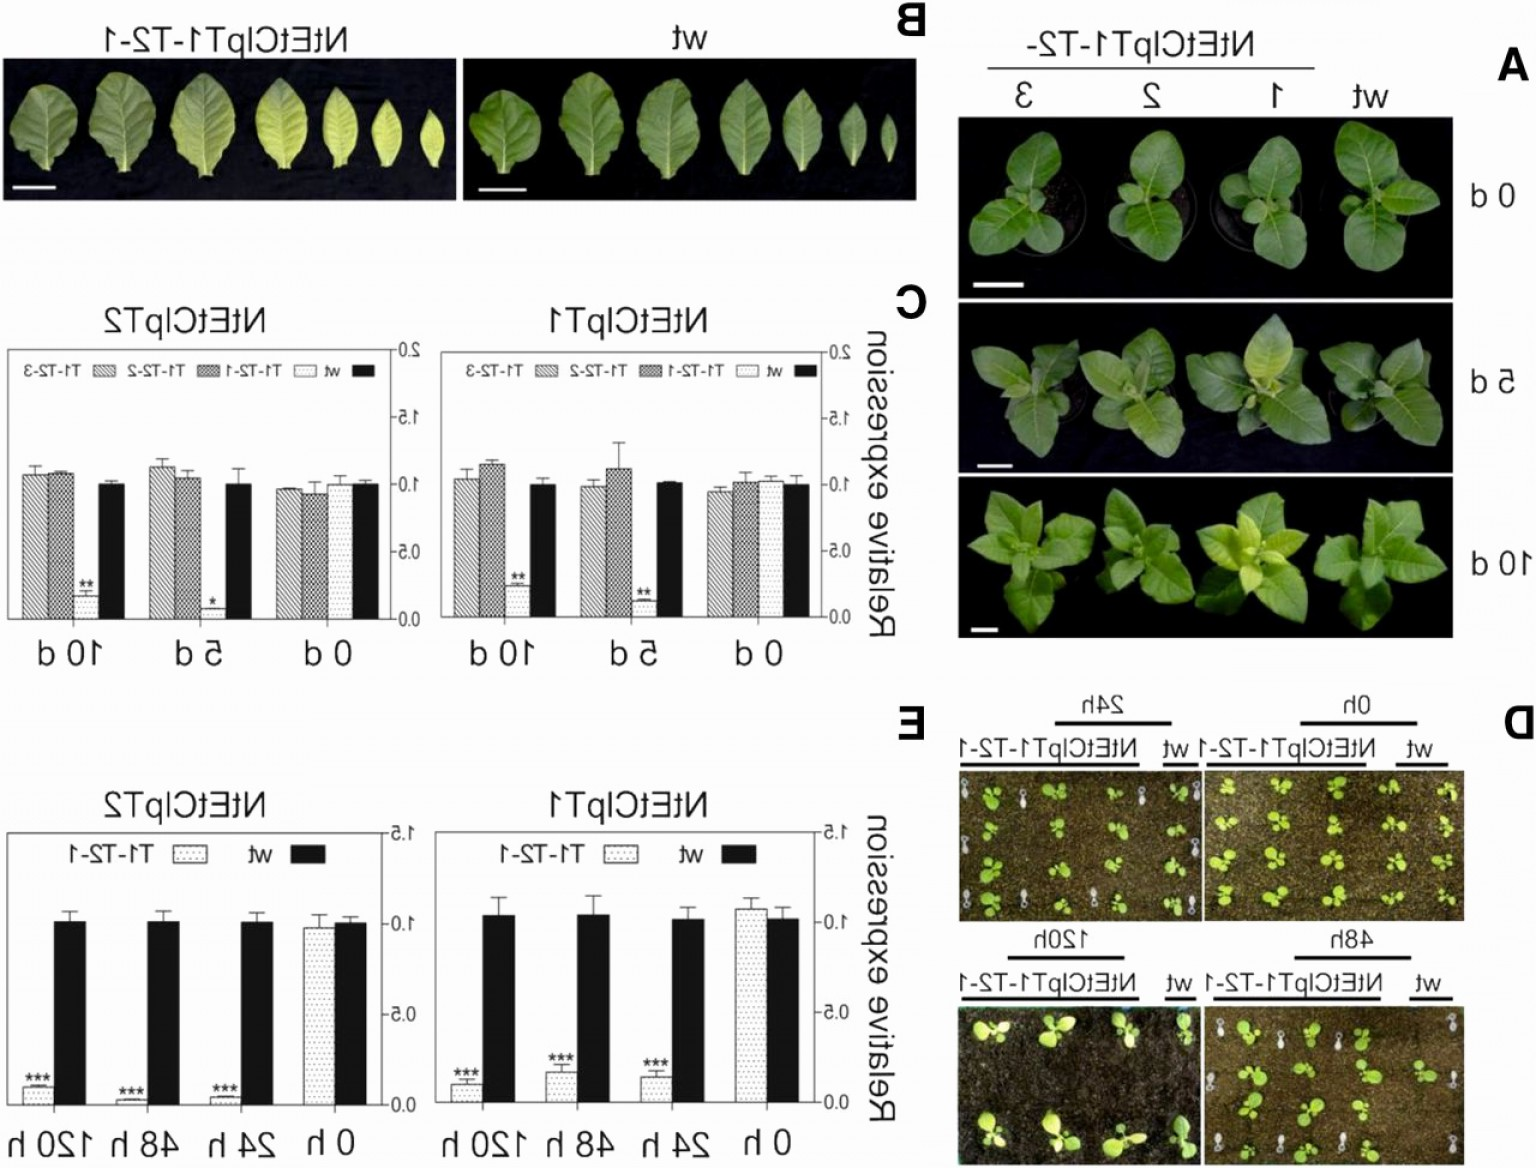 Vector Ban Plus: Vector Ban Plus Luxury Temporal Proteomics Of Inducible Rnai Lines Of Clp Protease Subunits